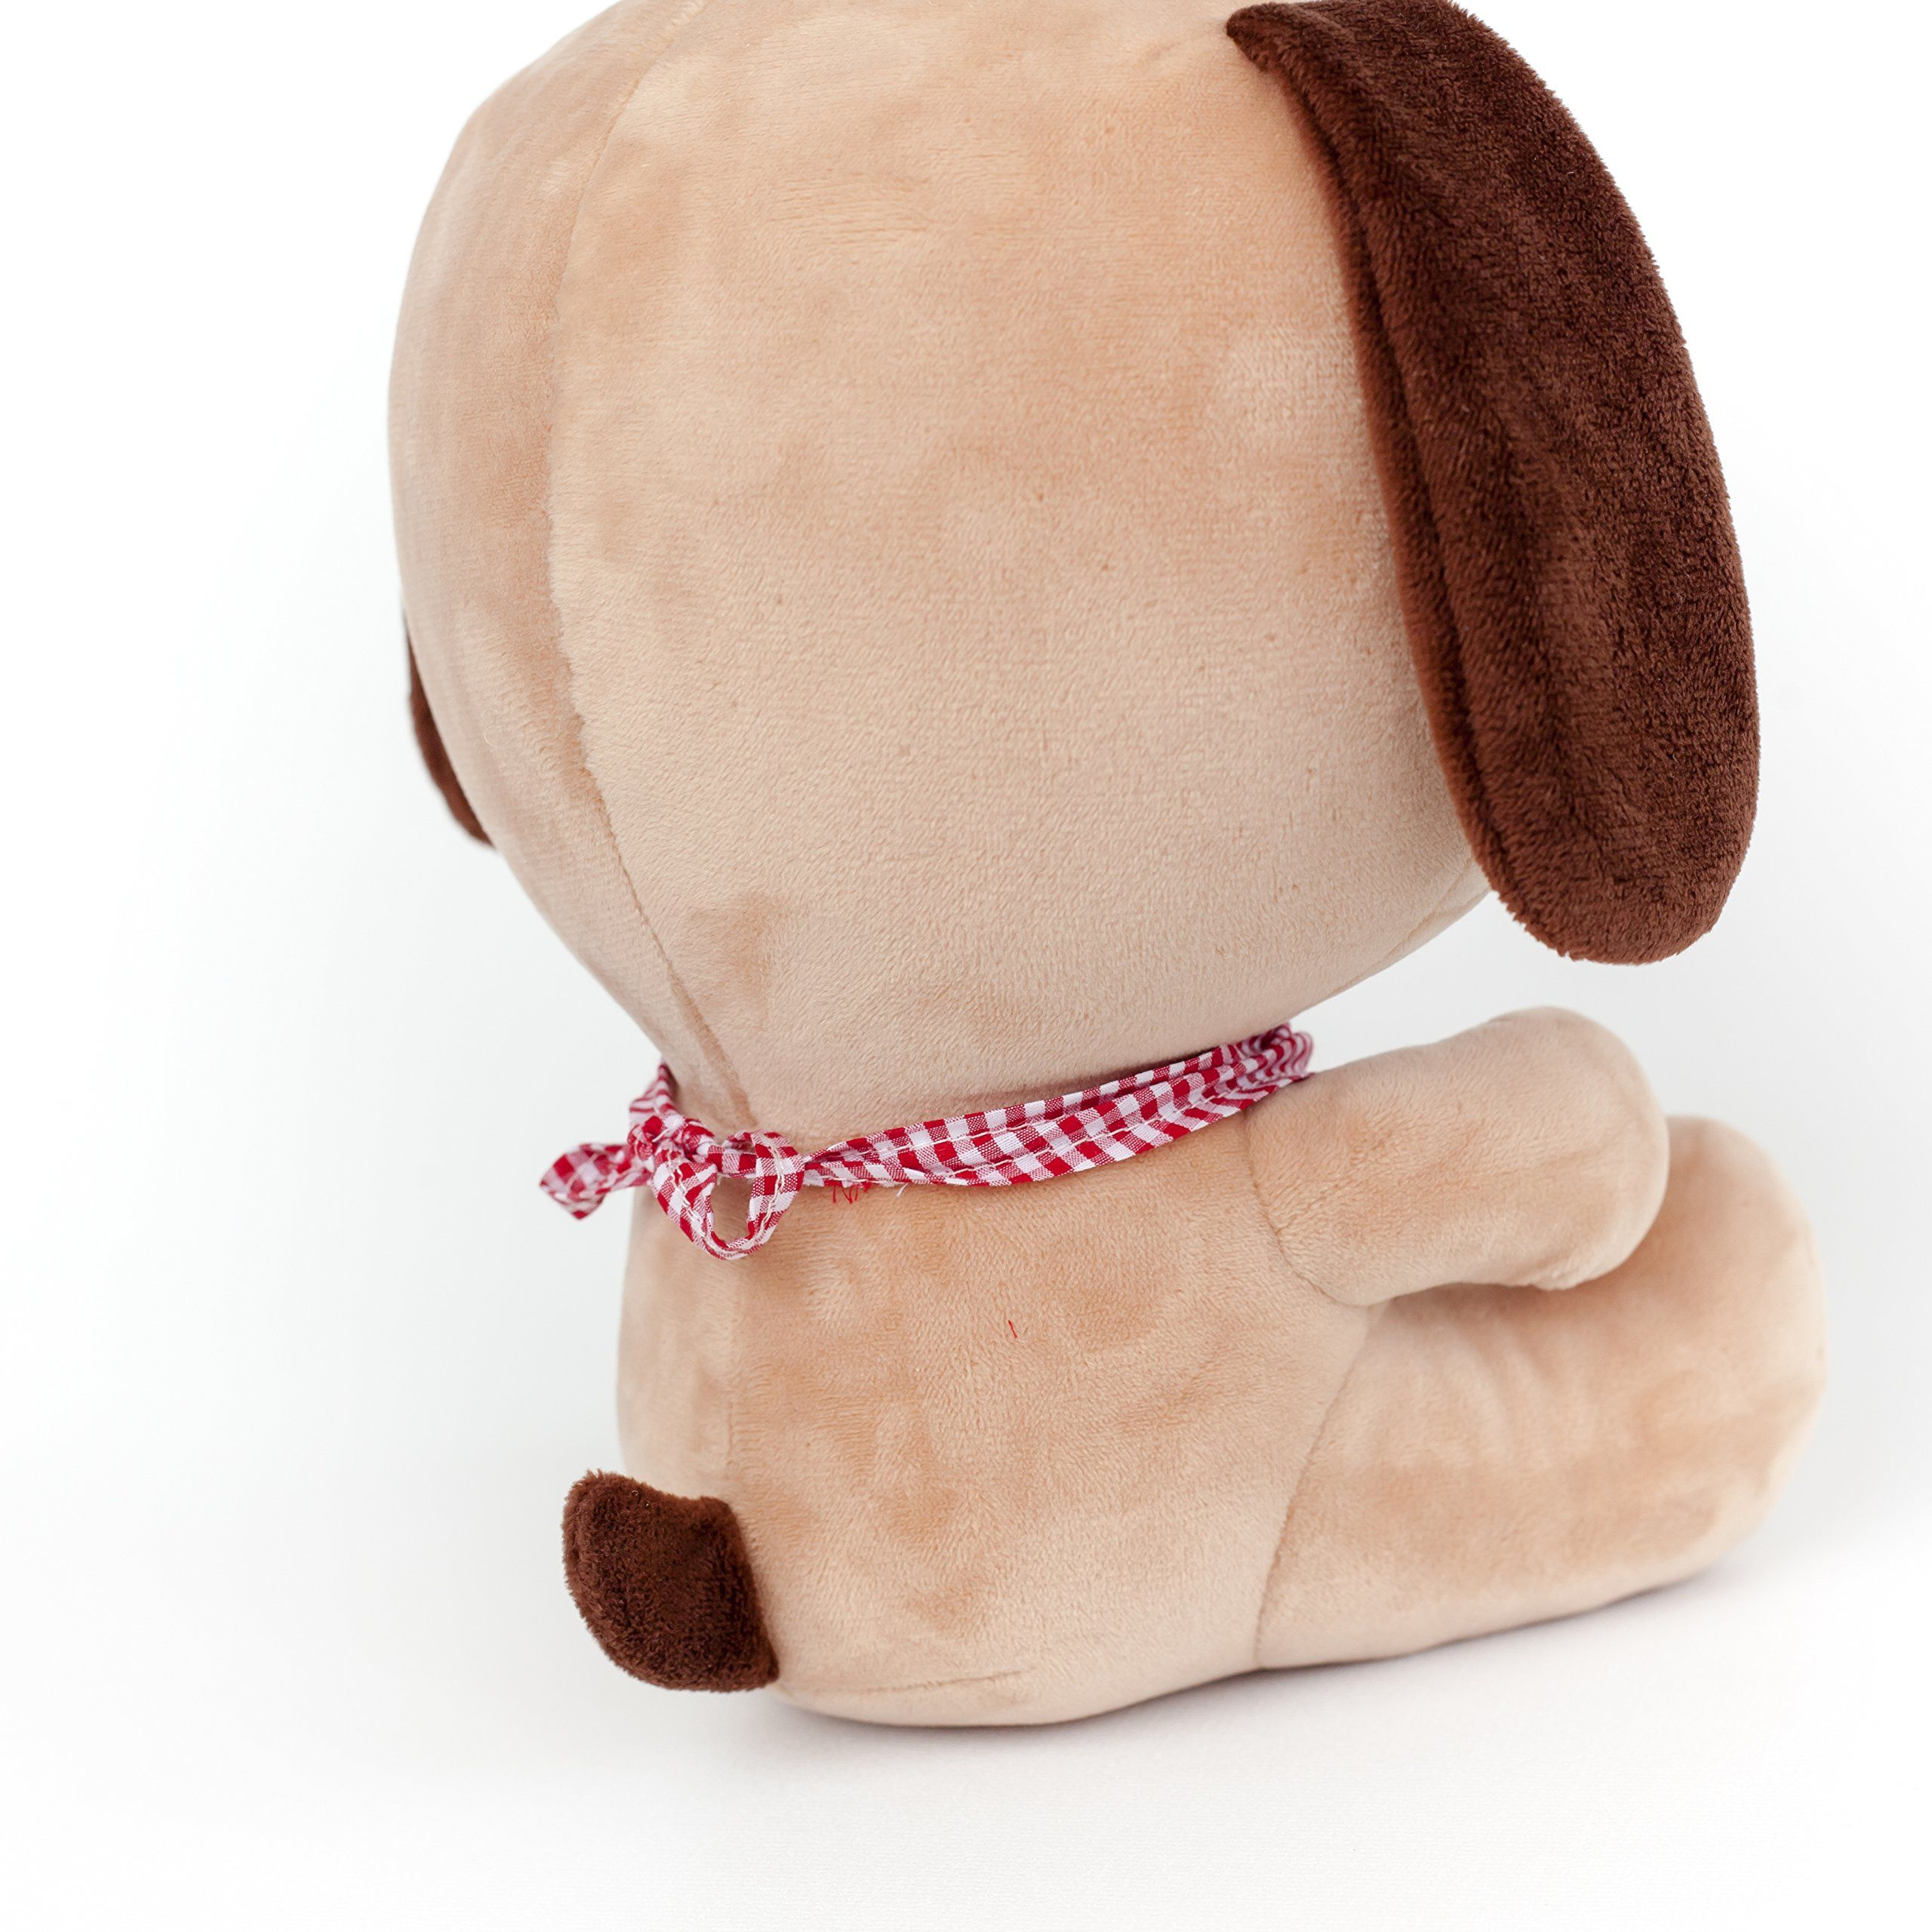 Safaya Stuffed Puppy For Girls And Boys Soft Squishable Cute Otto